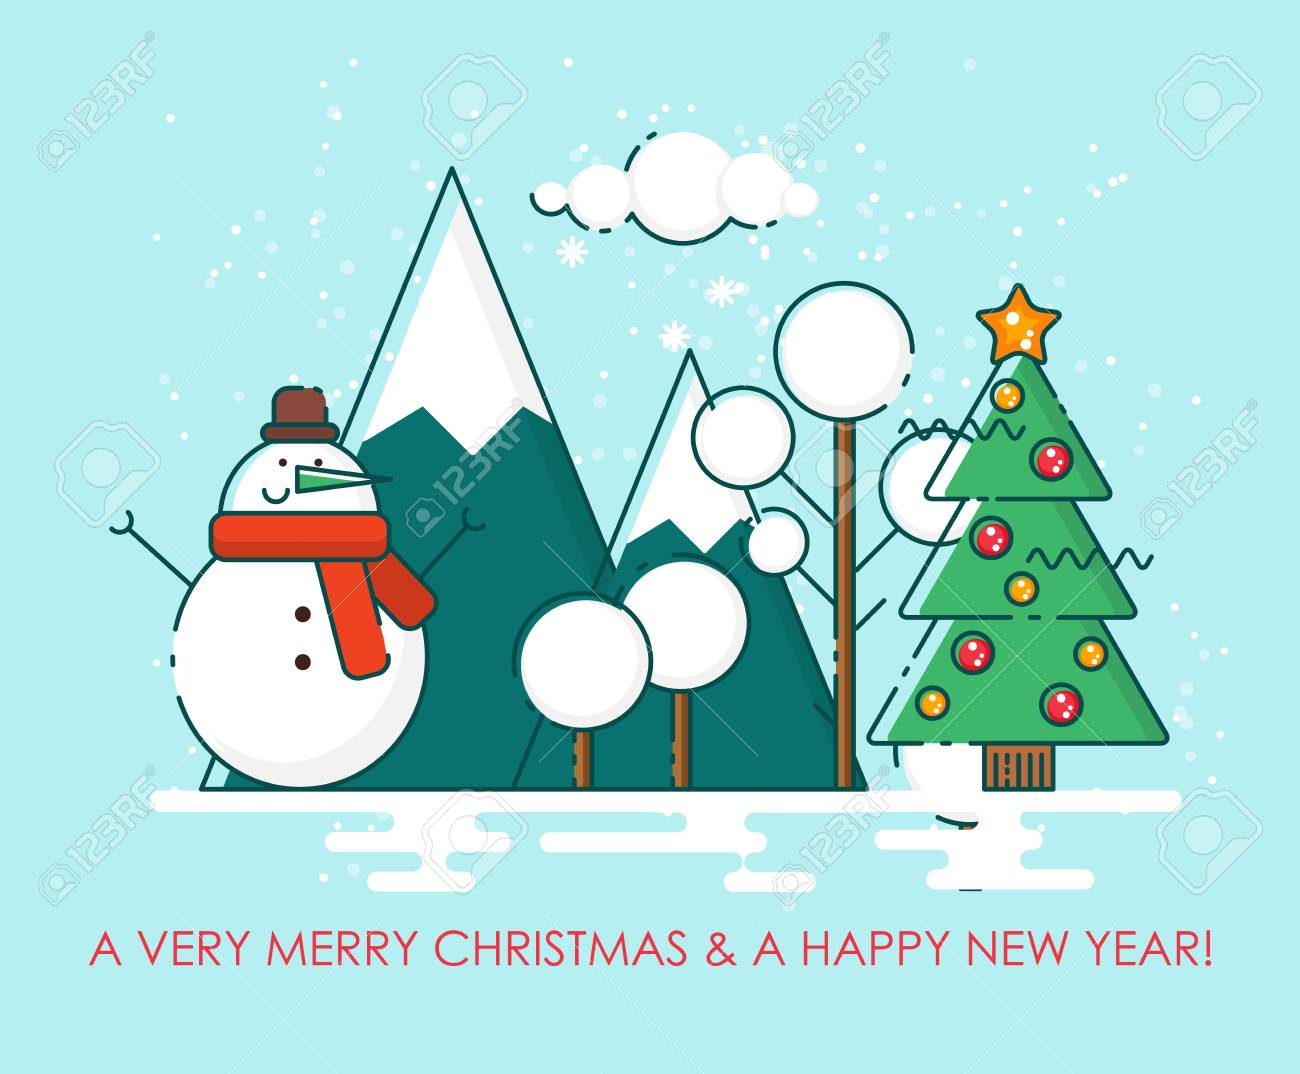 Merry Christmas Greeting Card. Happy New Year Wishes. Poster ...